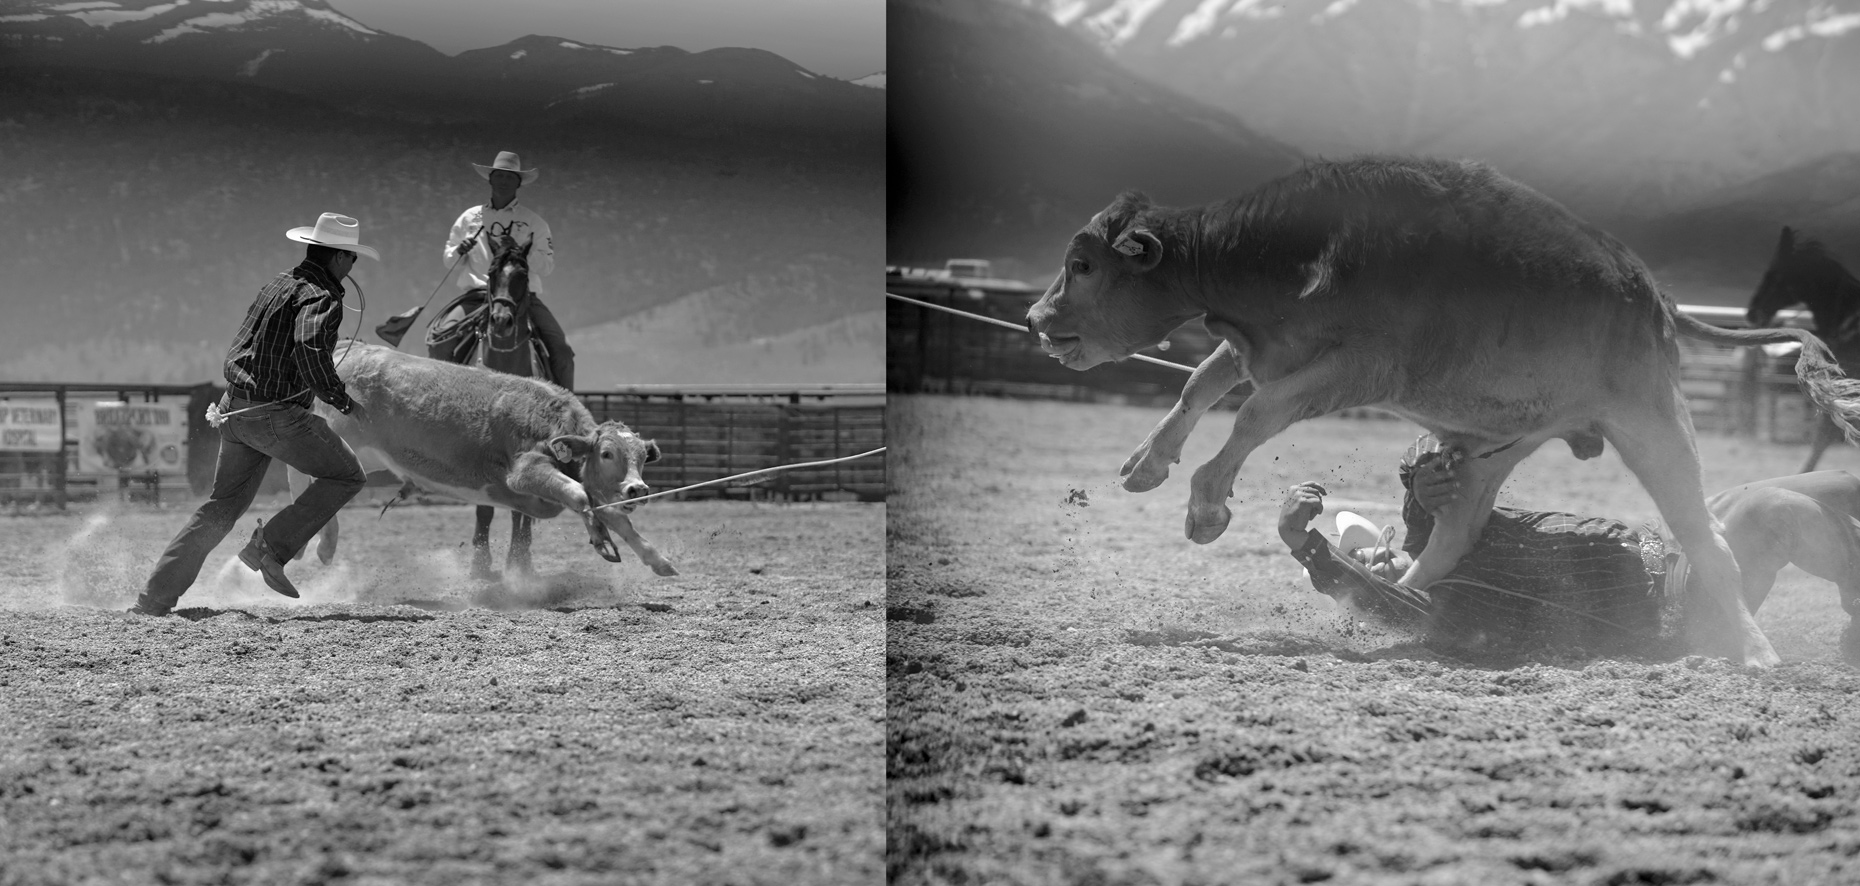 Roadtripping_BridgeportRodeo_Diptych_IndCalfWrestling_Action_Personal_Retouched_Web